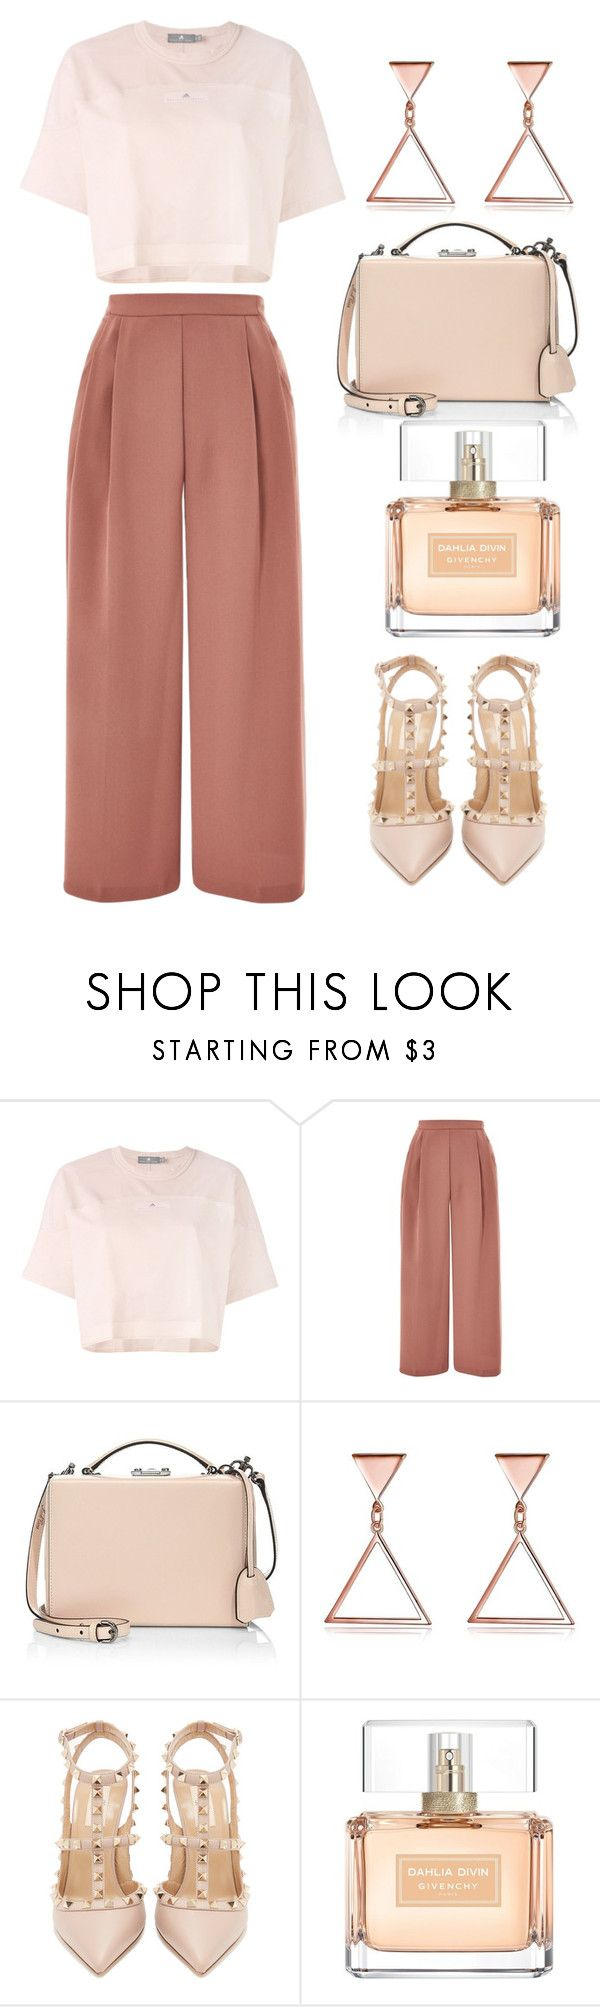 """""""Untitled #50"""" by xushargaeva ❤ liked on Polyvore featuring adidas, Topshop, Mark Cross, Valentino and Givenchy"""